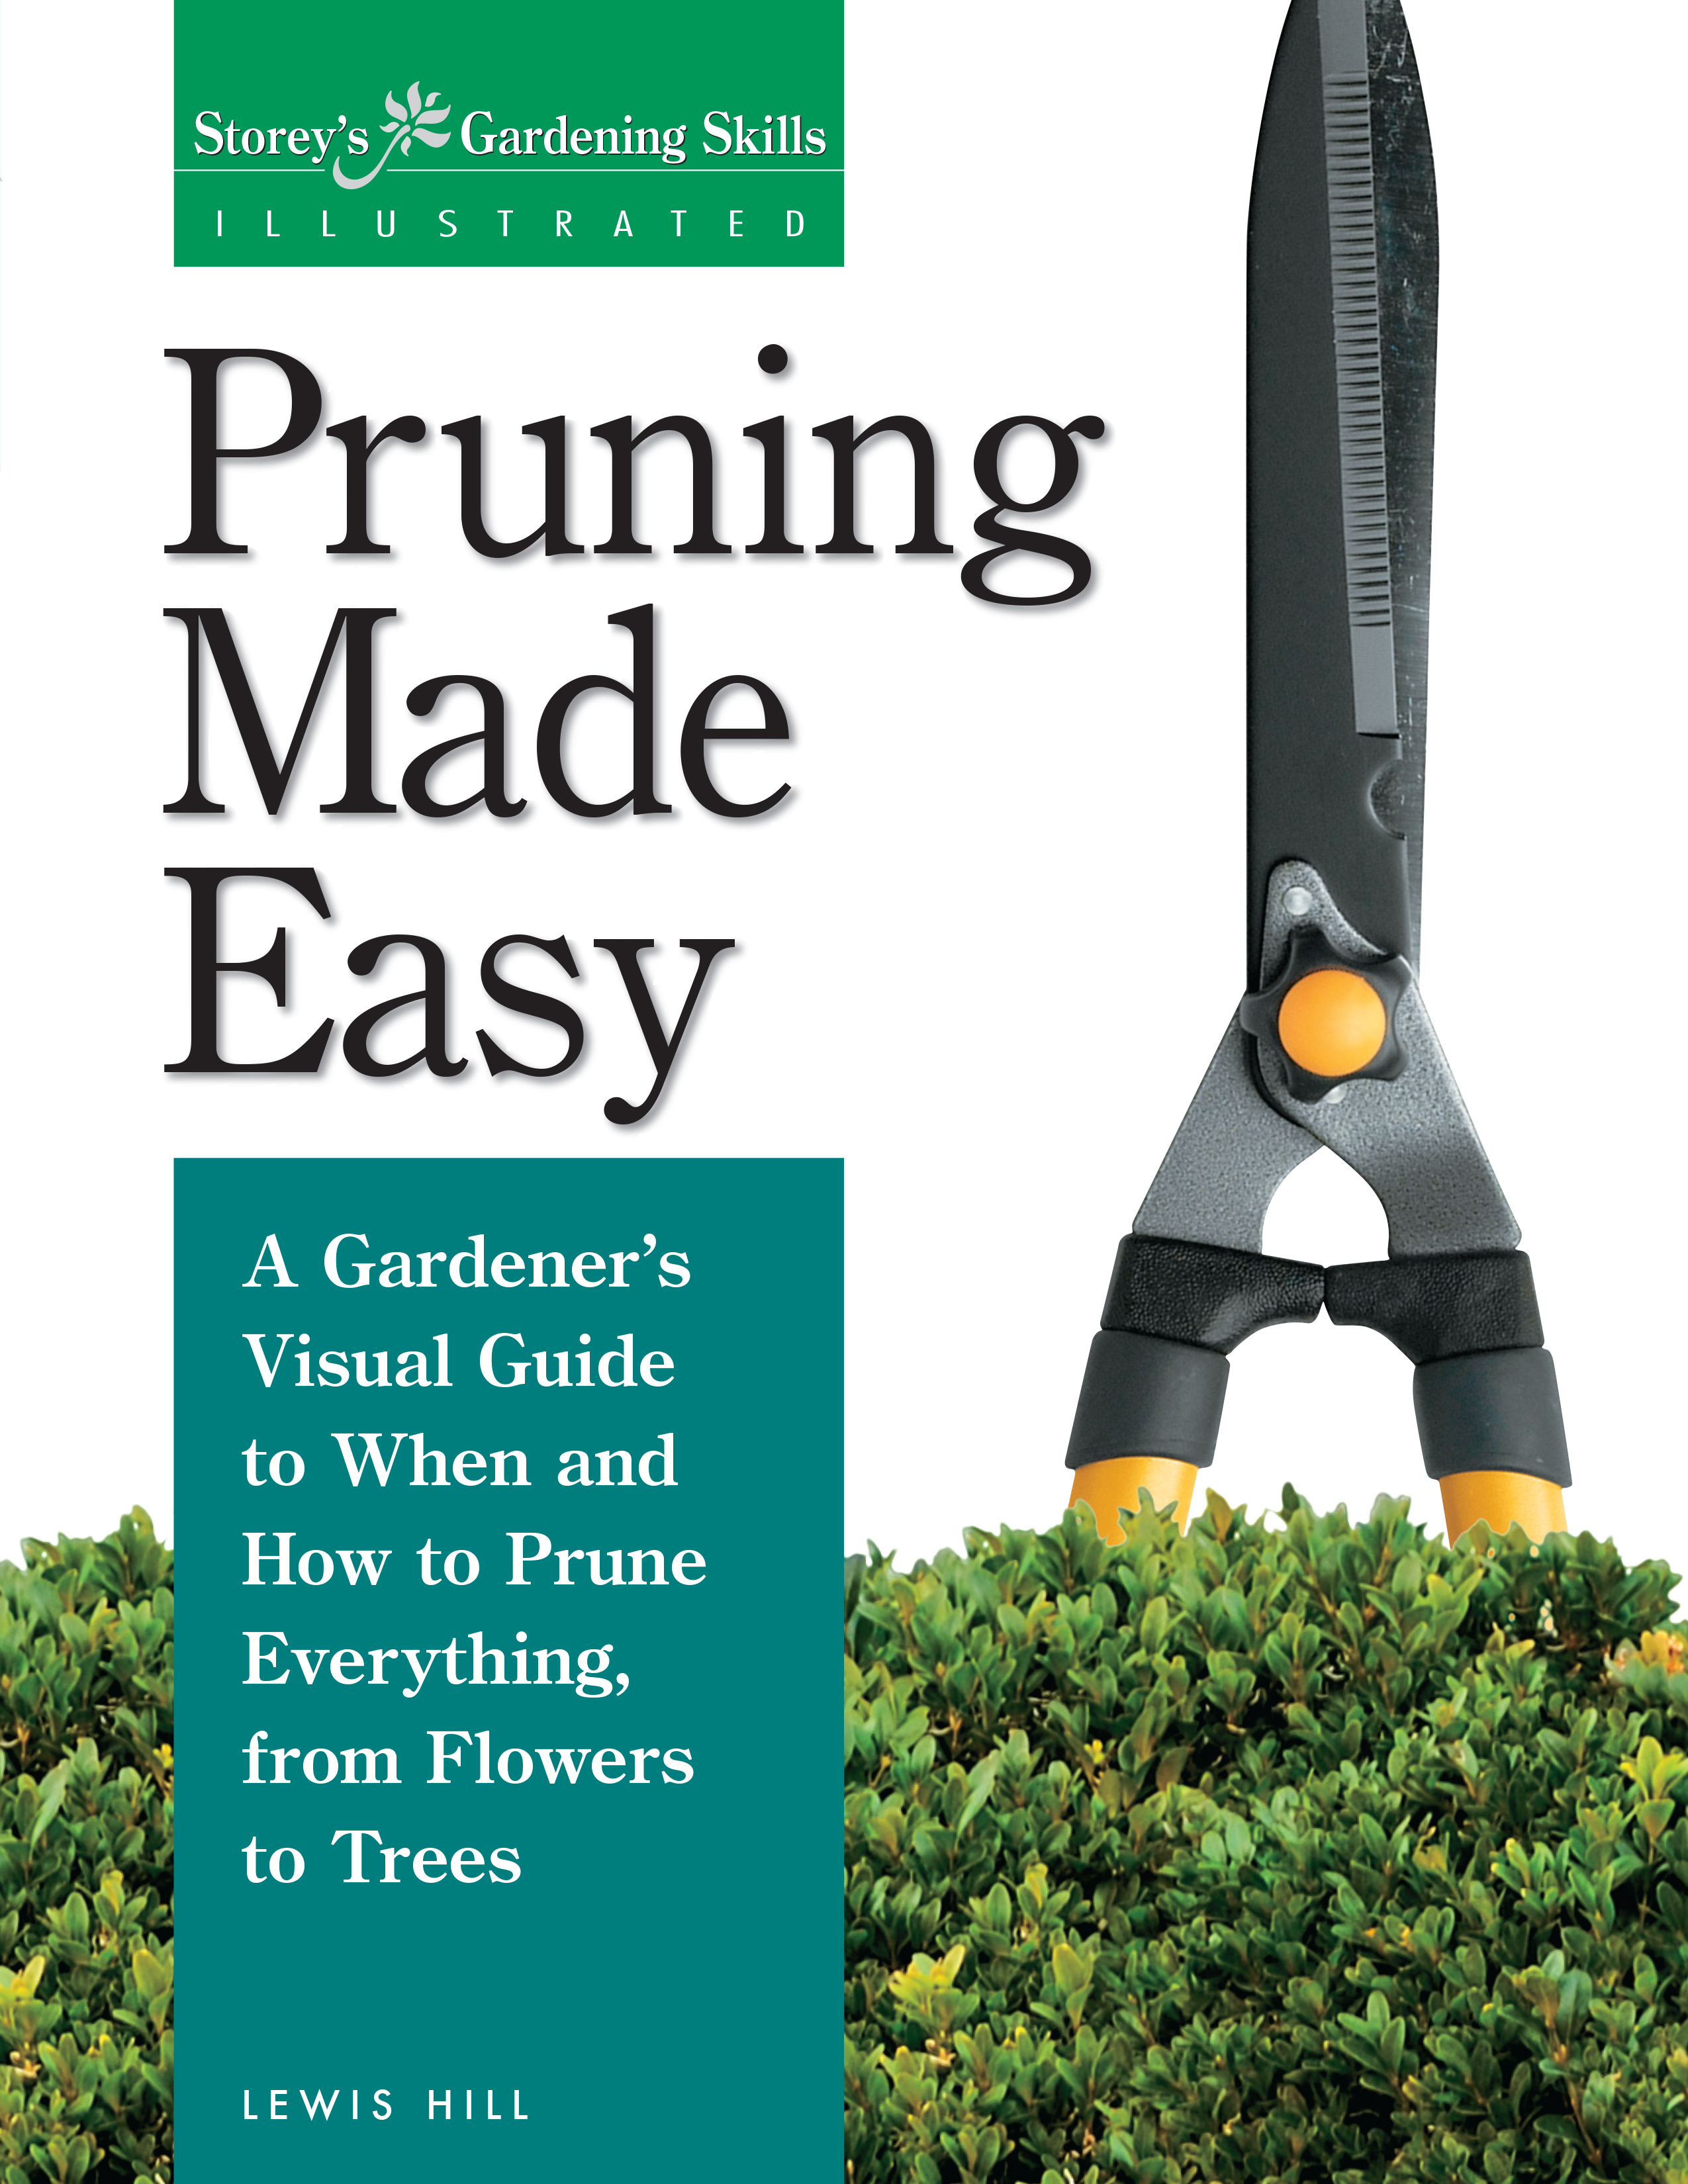 Pruning Made Easy A Gardener's Visual Guide to When and How to Prune Everything, from Flowers to Trees - Lewis Hill